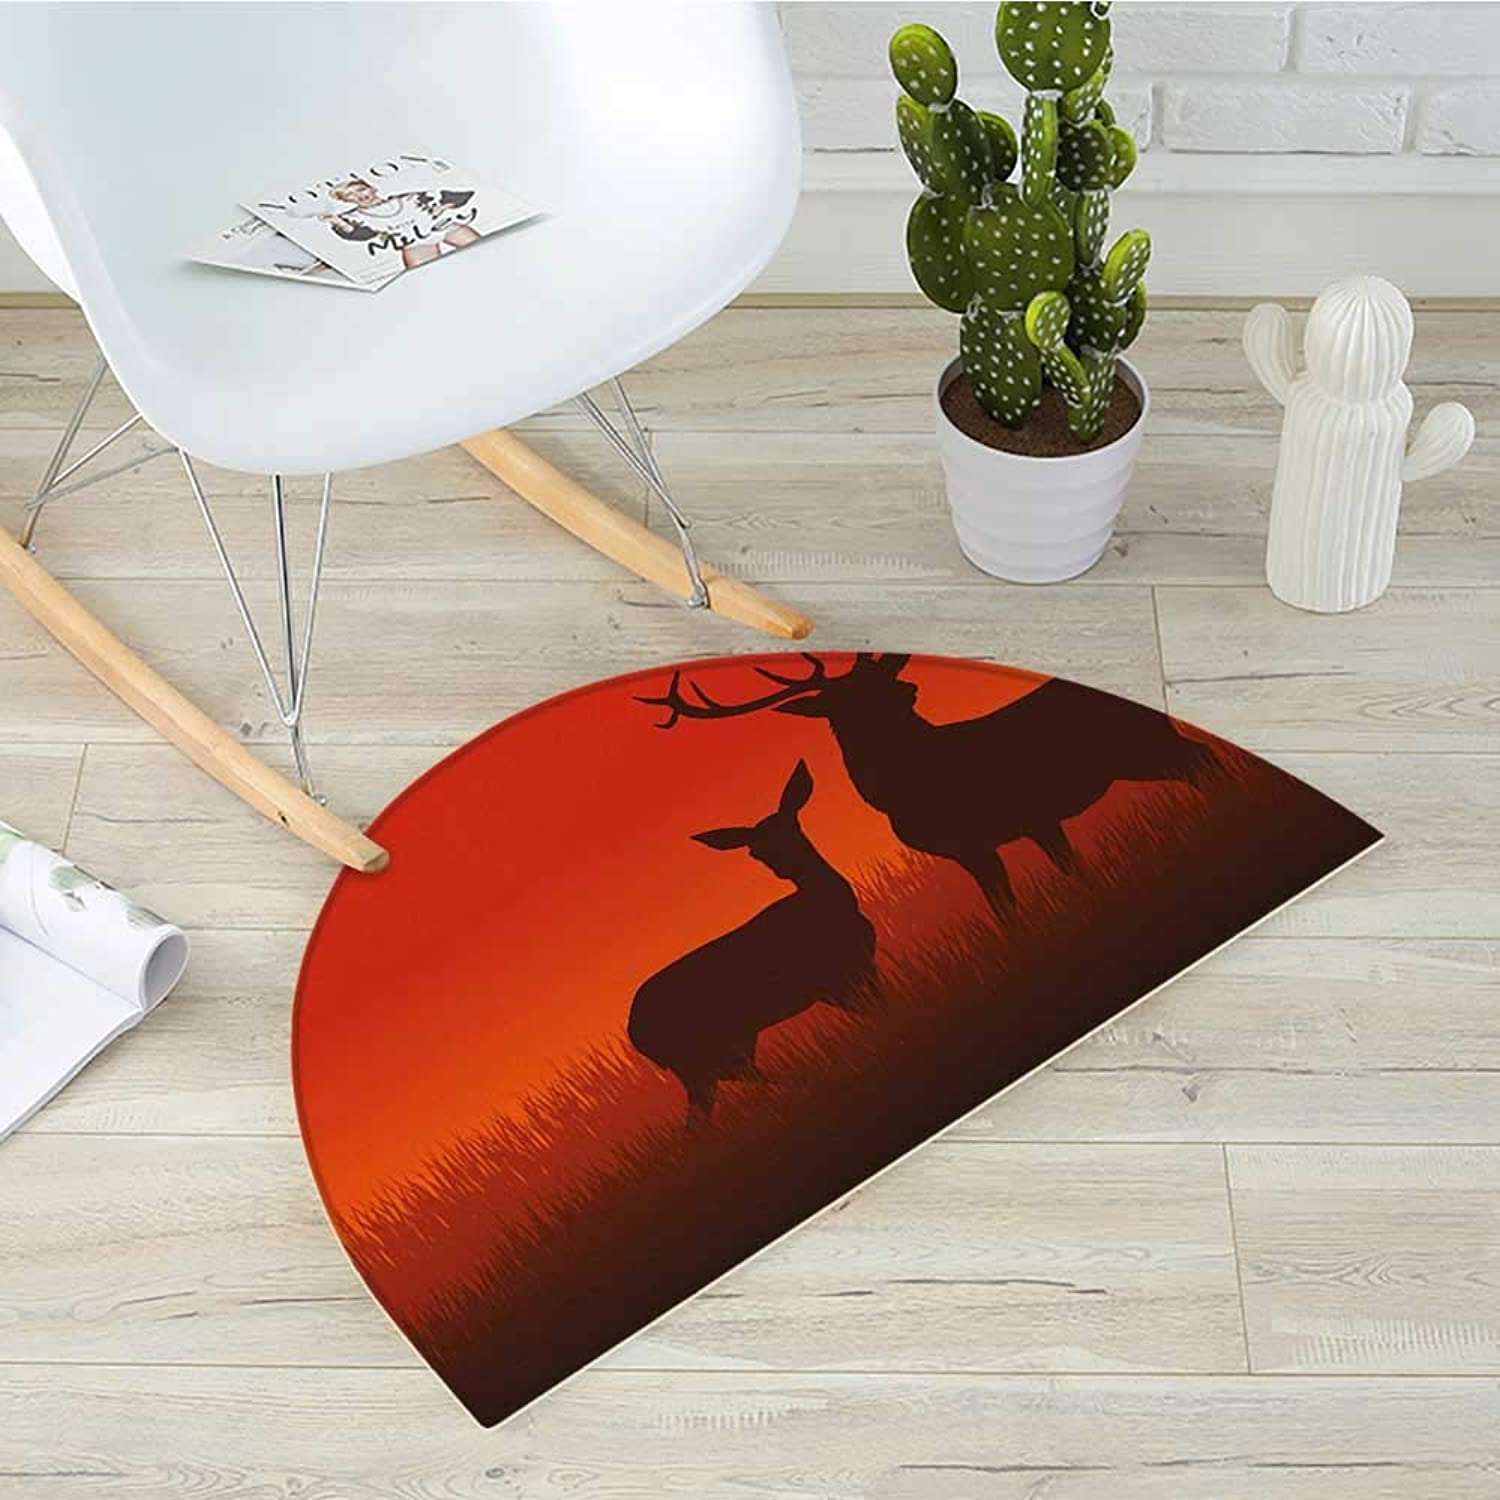 Hunting Semicircle Doormat Silhouette Illustration of a Deer and Doe on Meadow Animals Autumn Season Skyline Halfmoon doormats H 43.3  xD 64.9  Multicolor